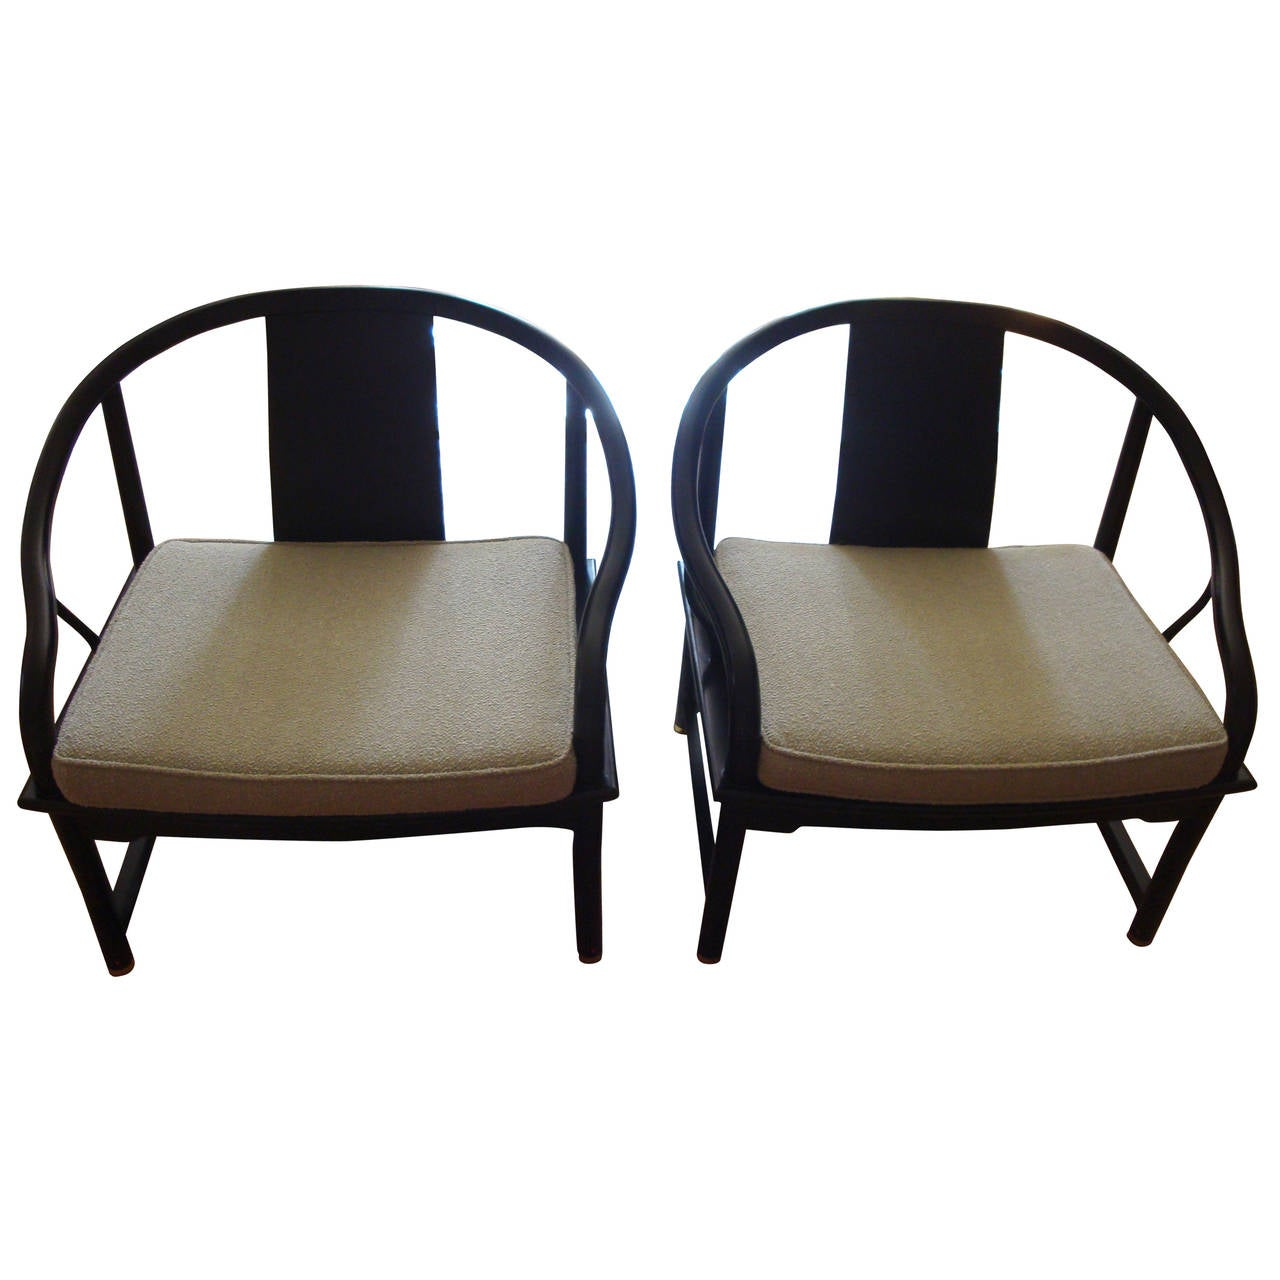 Mid century modern baker asian style caned chairs at 1stdibs for Mid century modern seating